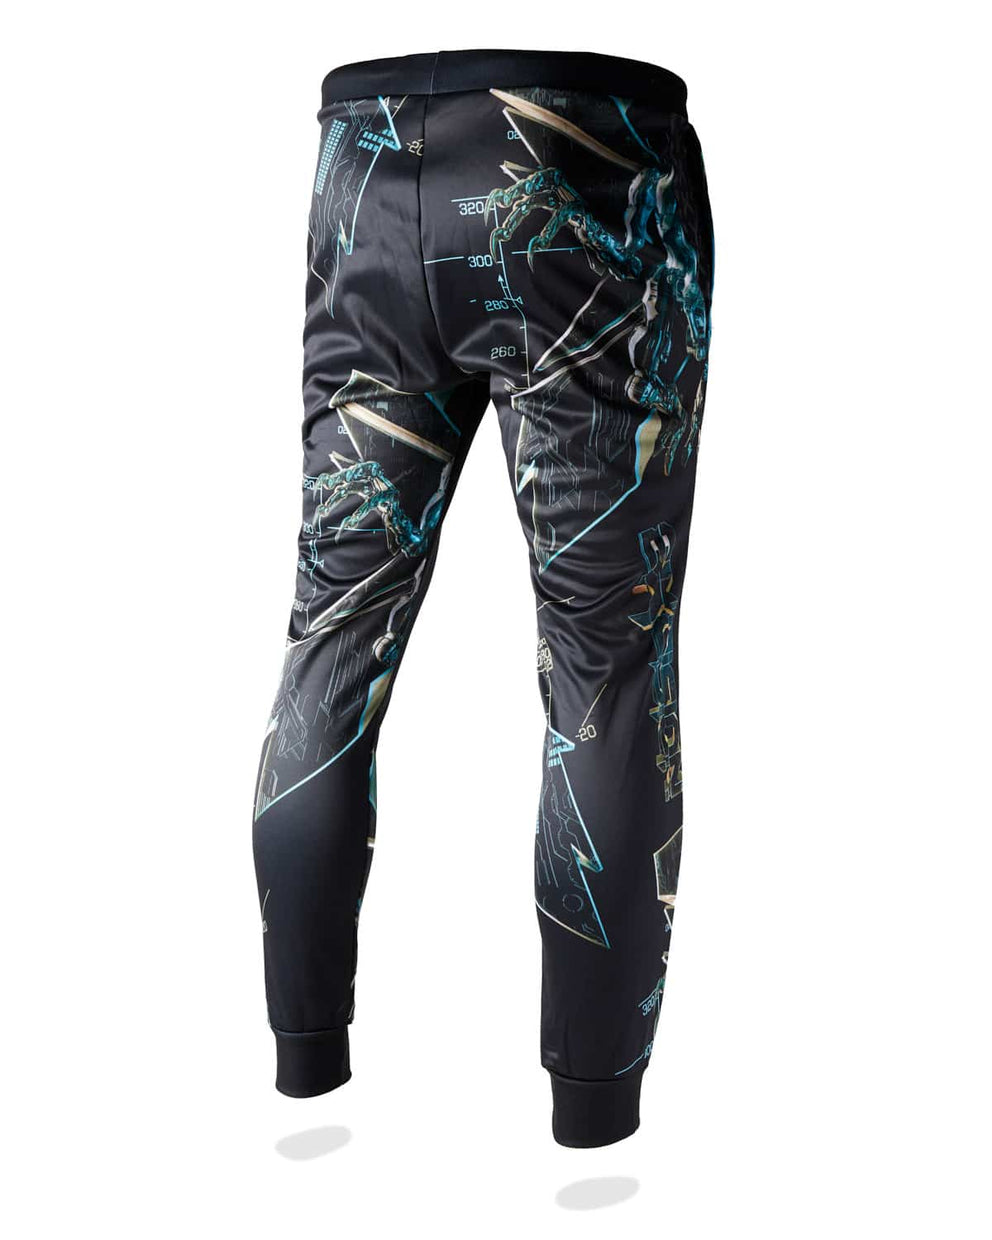 Excision 'Magnetite' Joggers - Black/Blue